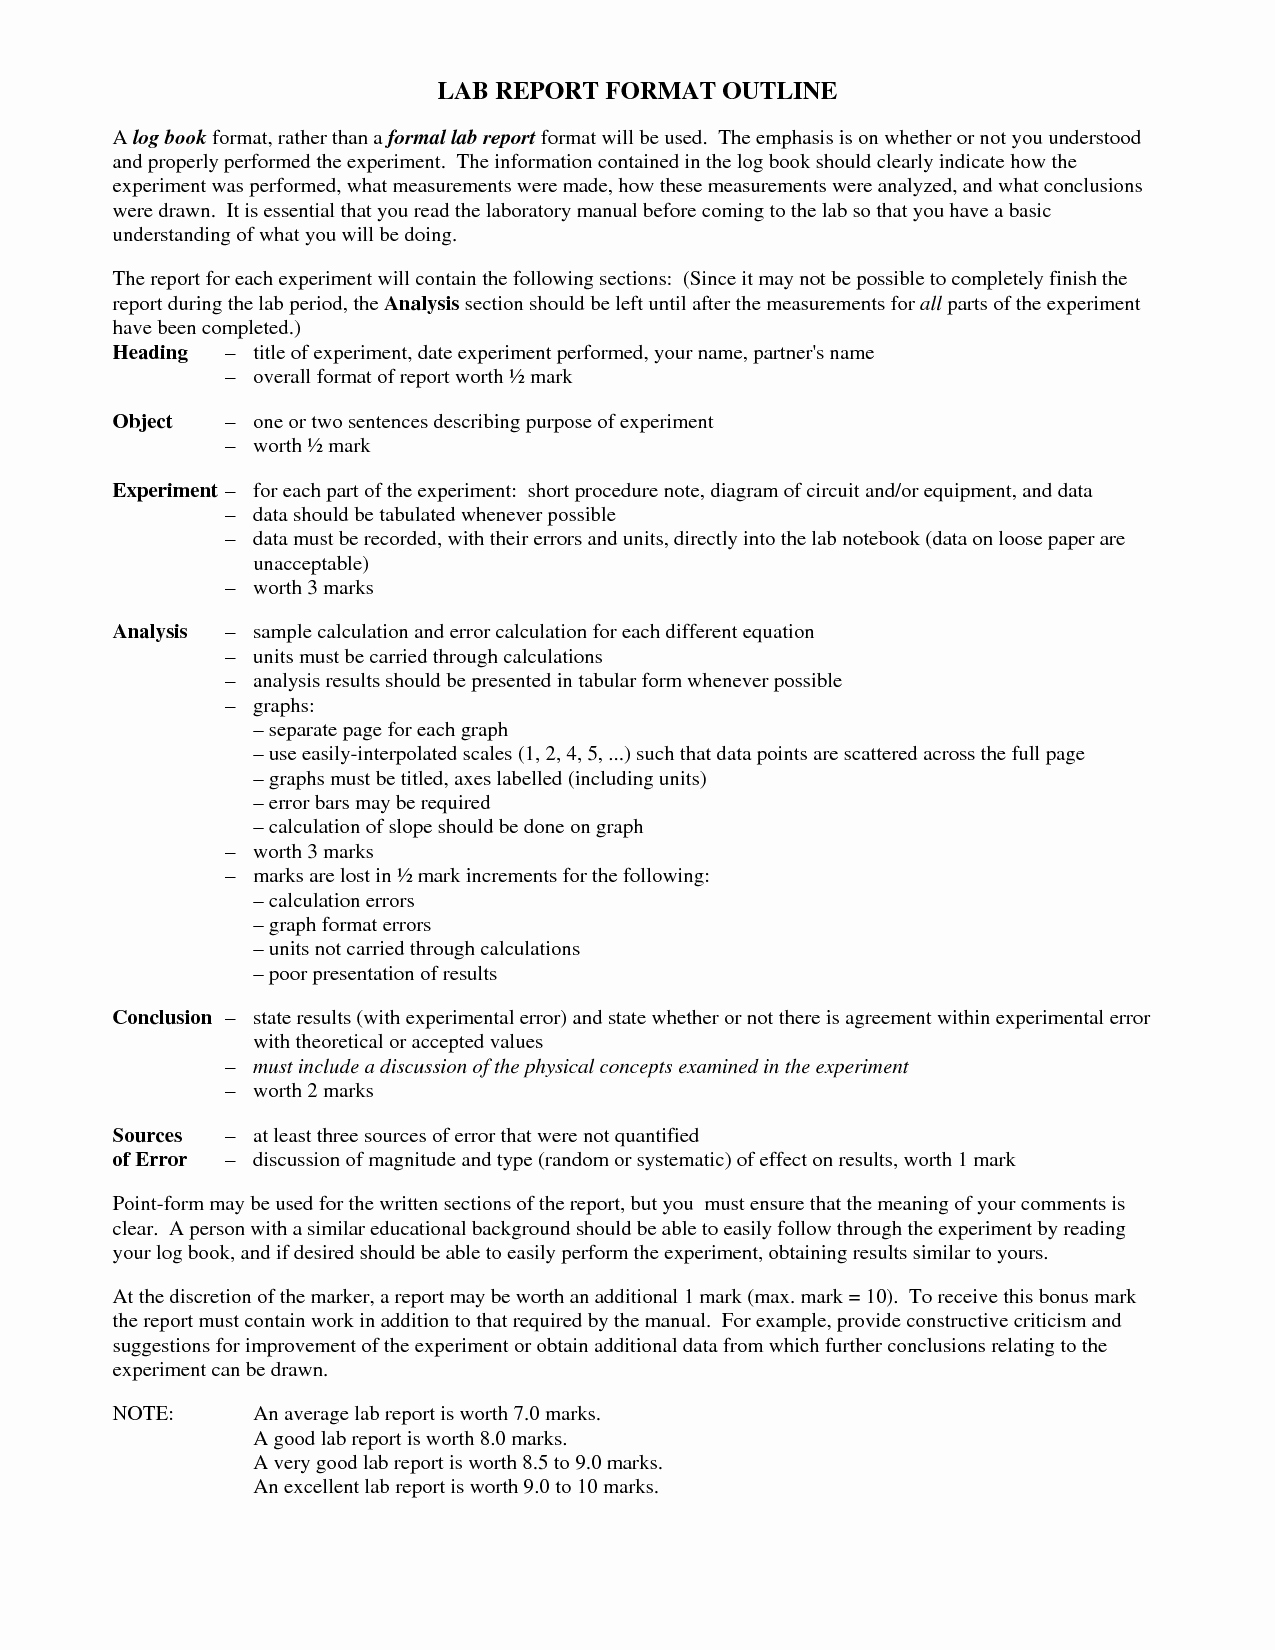 Formal Lab Report Template Elegant formal Report Outline Zoro Blaszczak